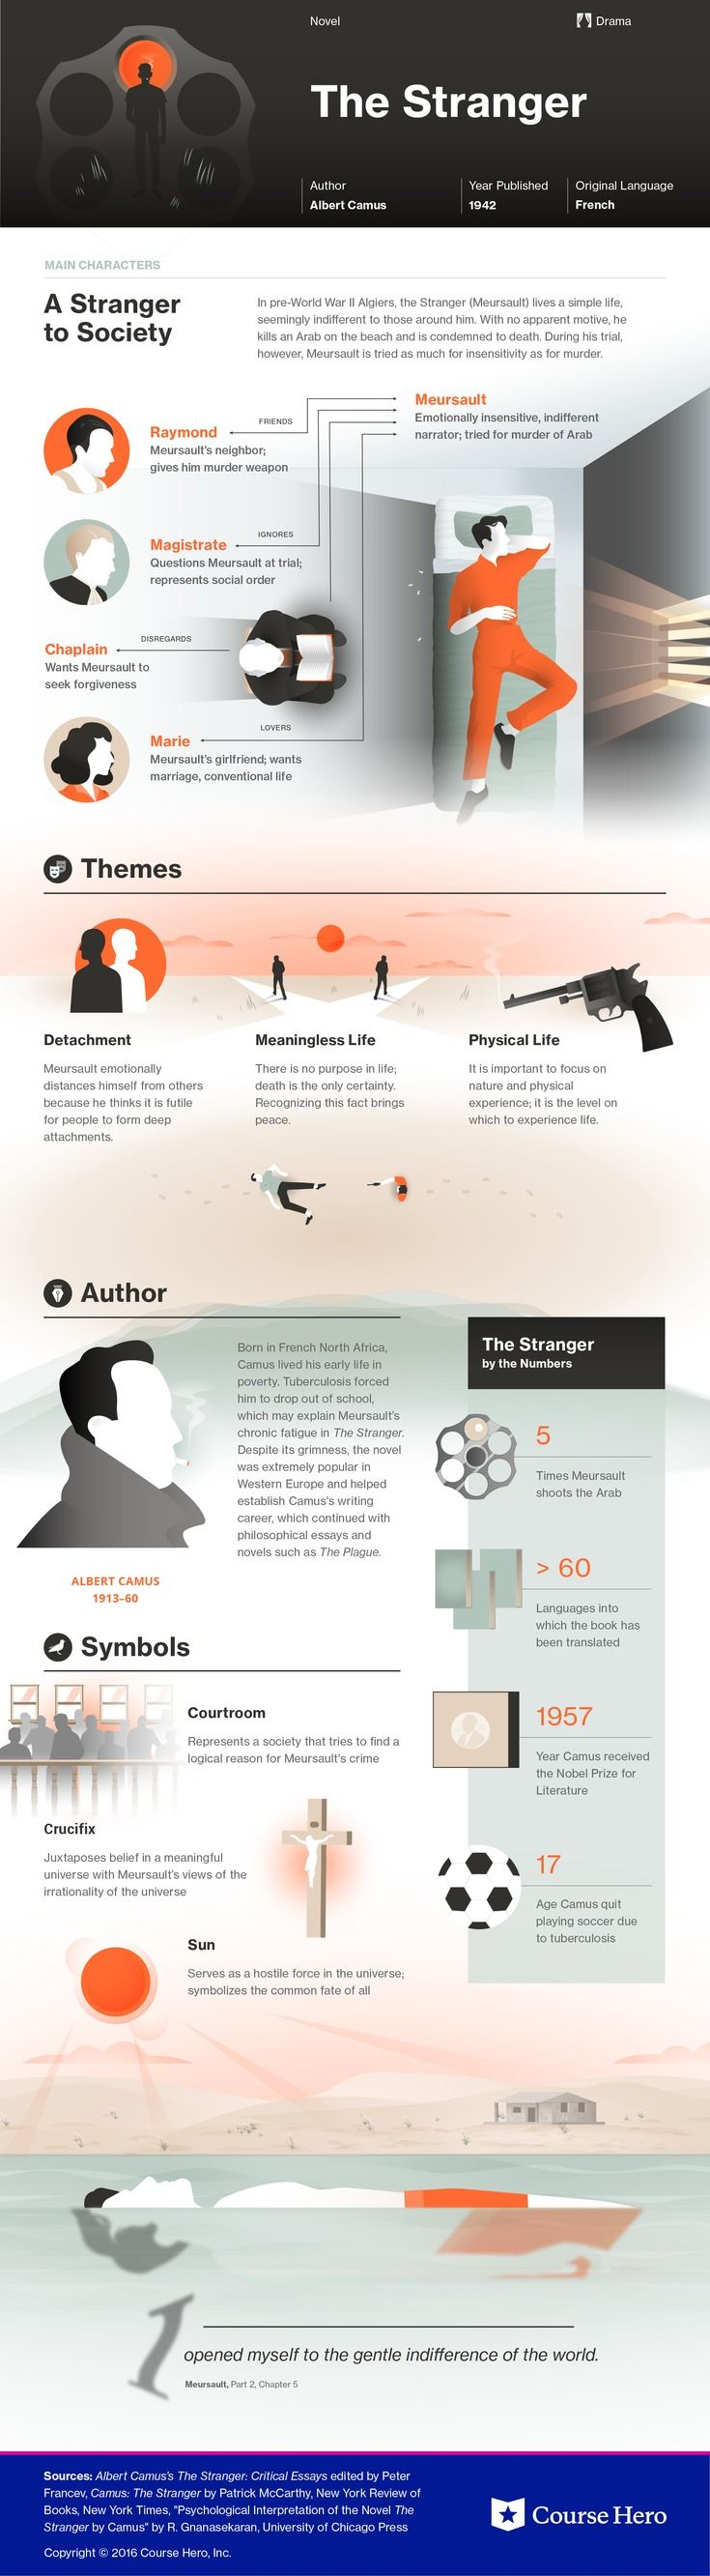 17 best ideas about the stranger book the stranger this coursehero infographic on the stranger is both visually stunning and informative